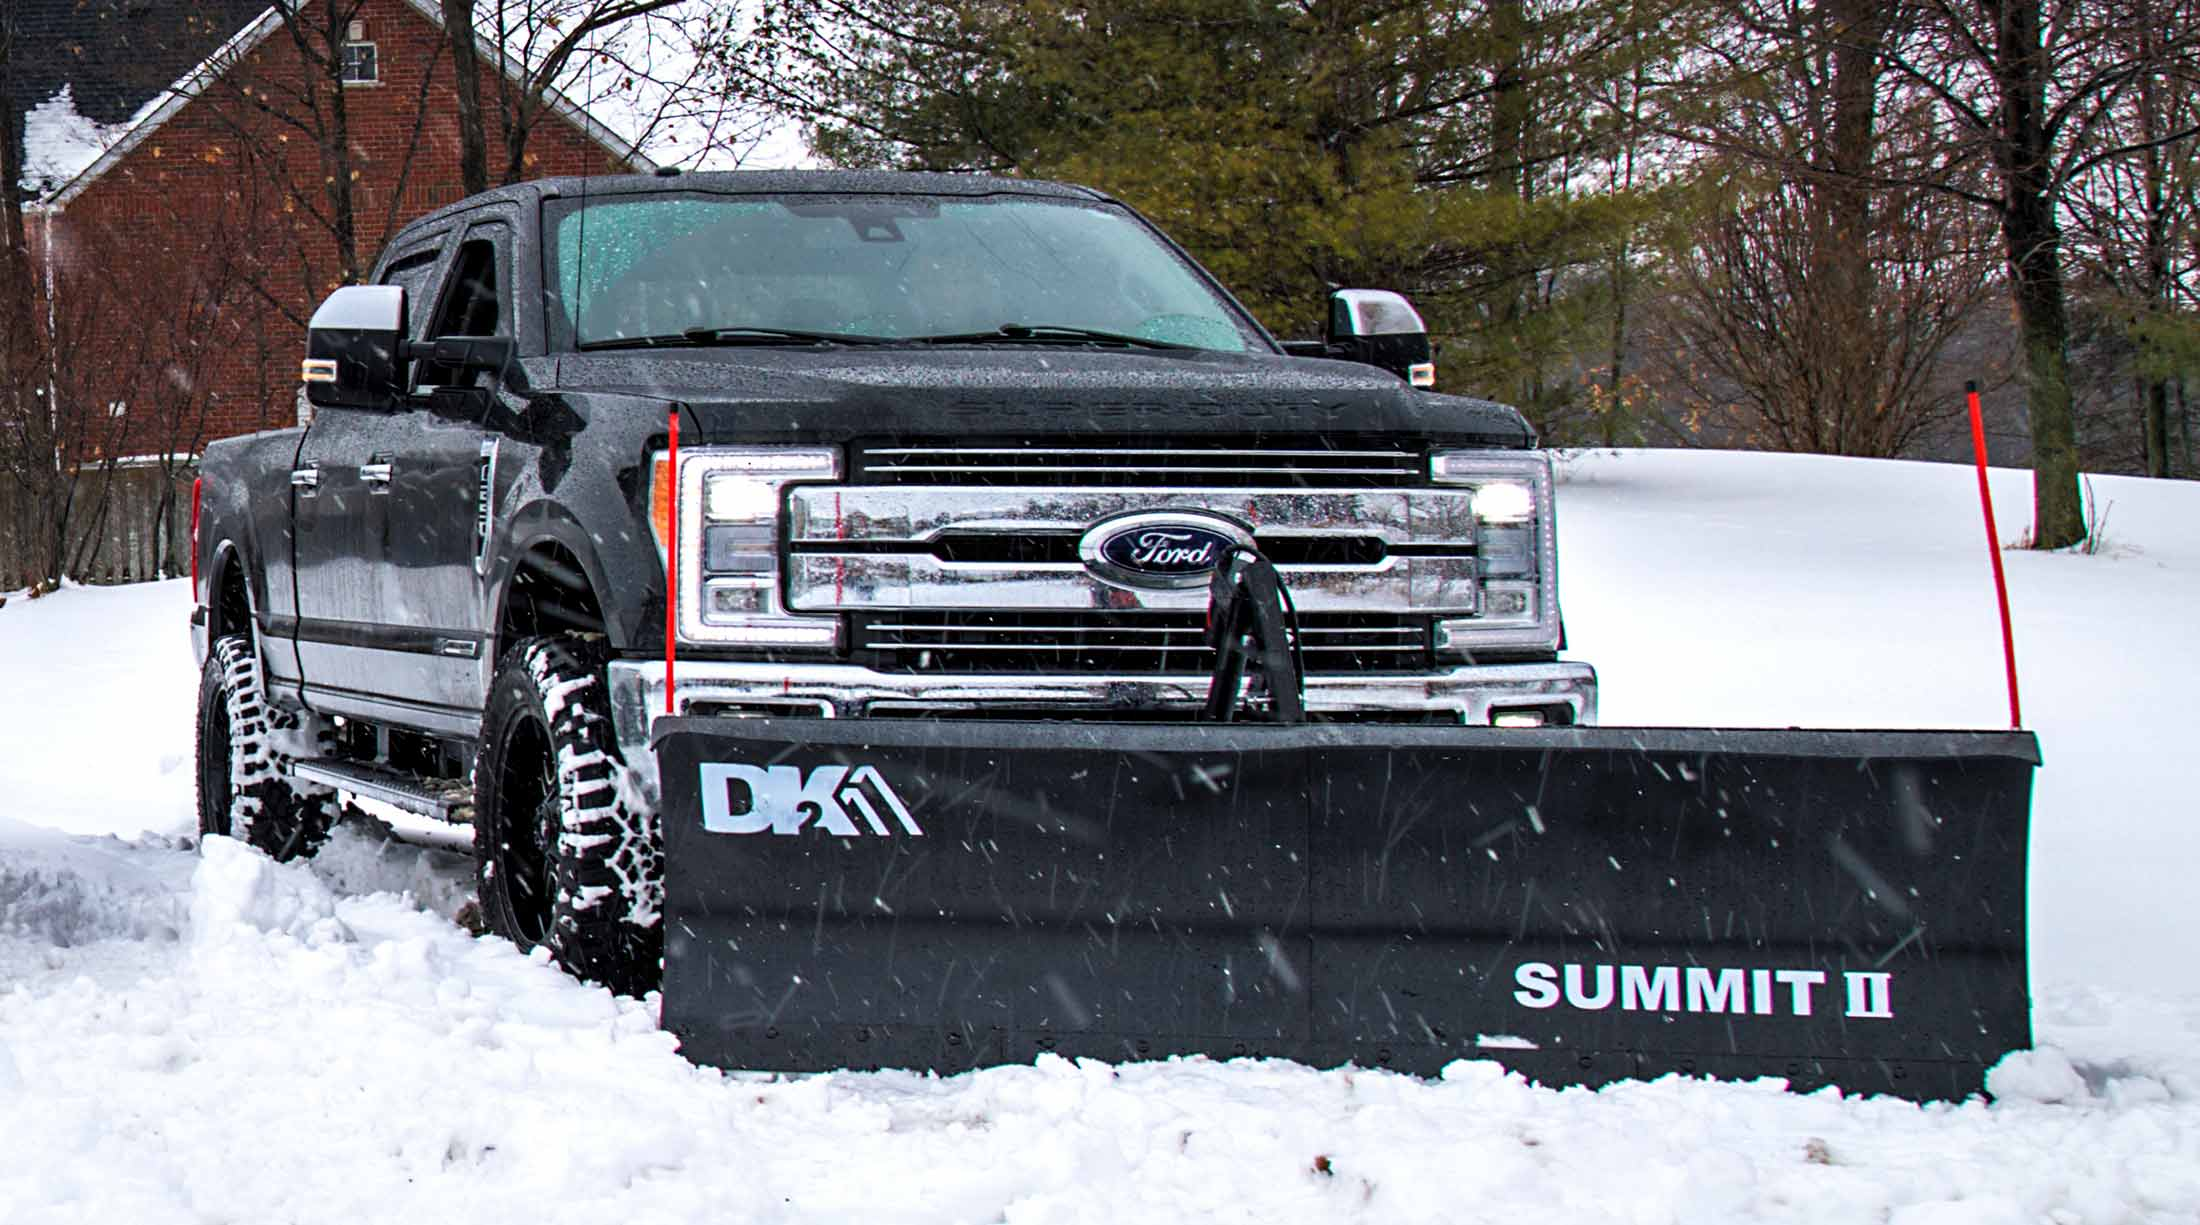 DK2SNOW PLOWS - GET READY FOR WINTER